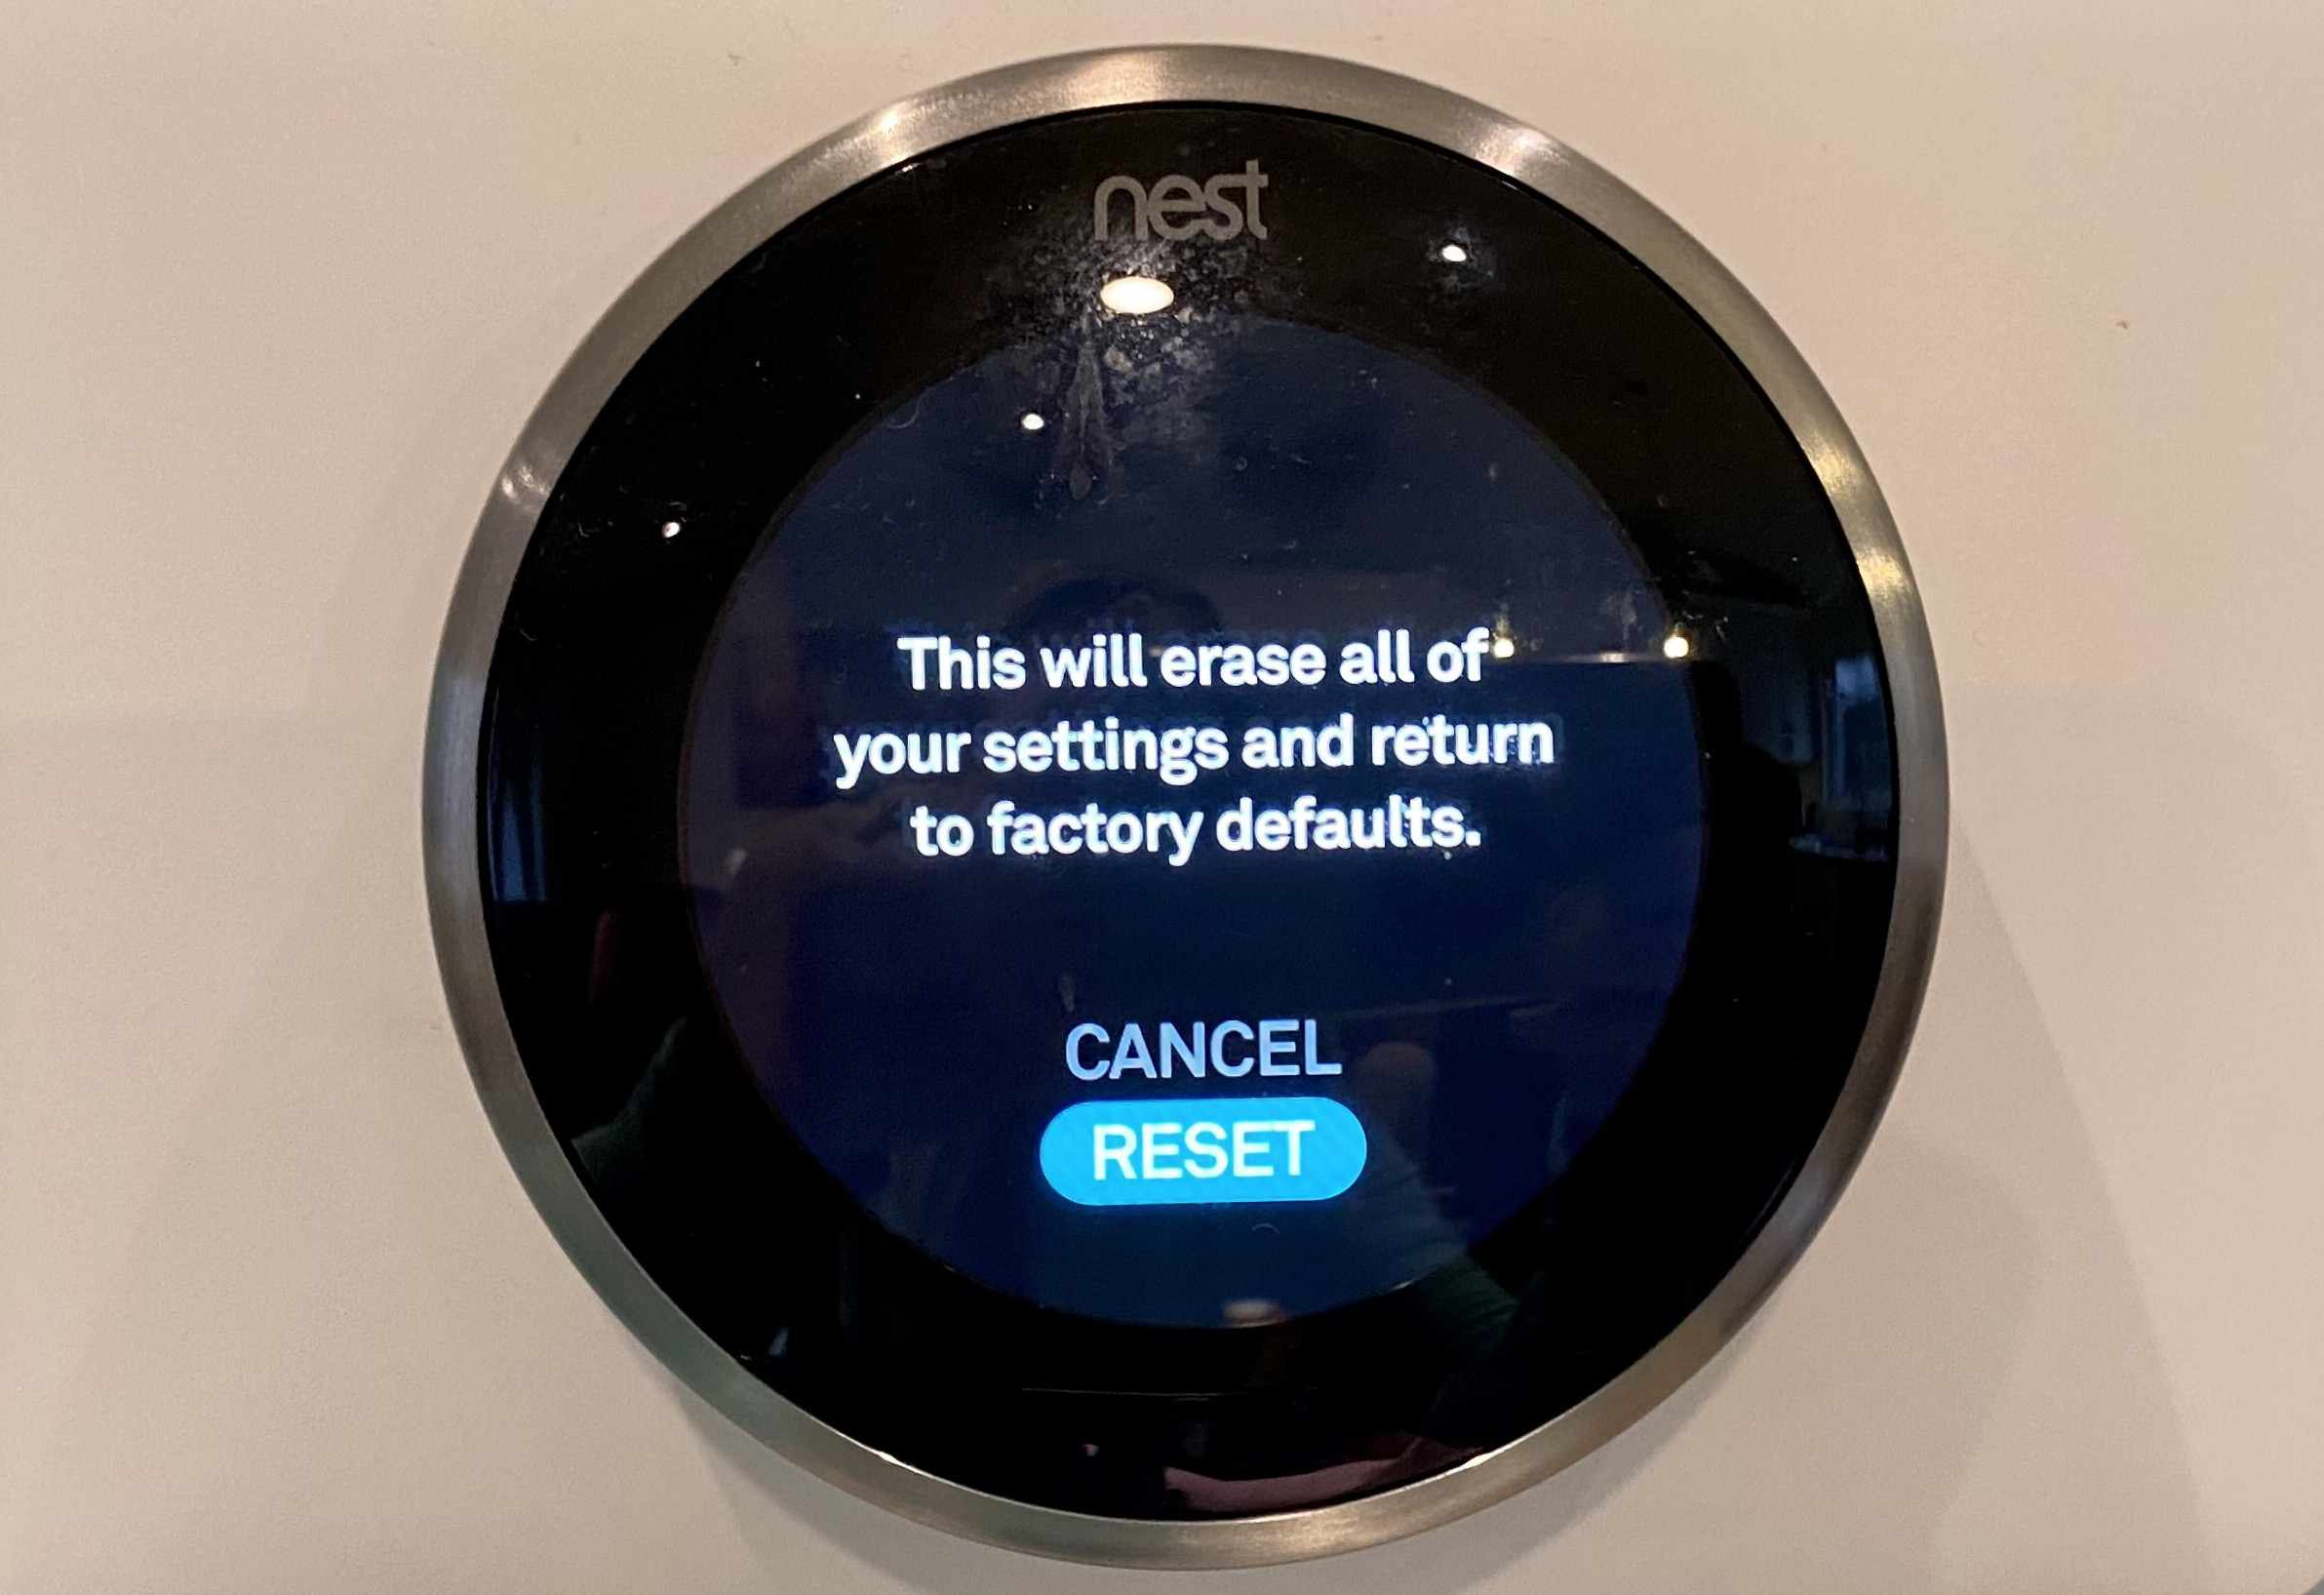 The menu on the Nest thermostat to reset it.